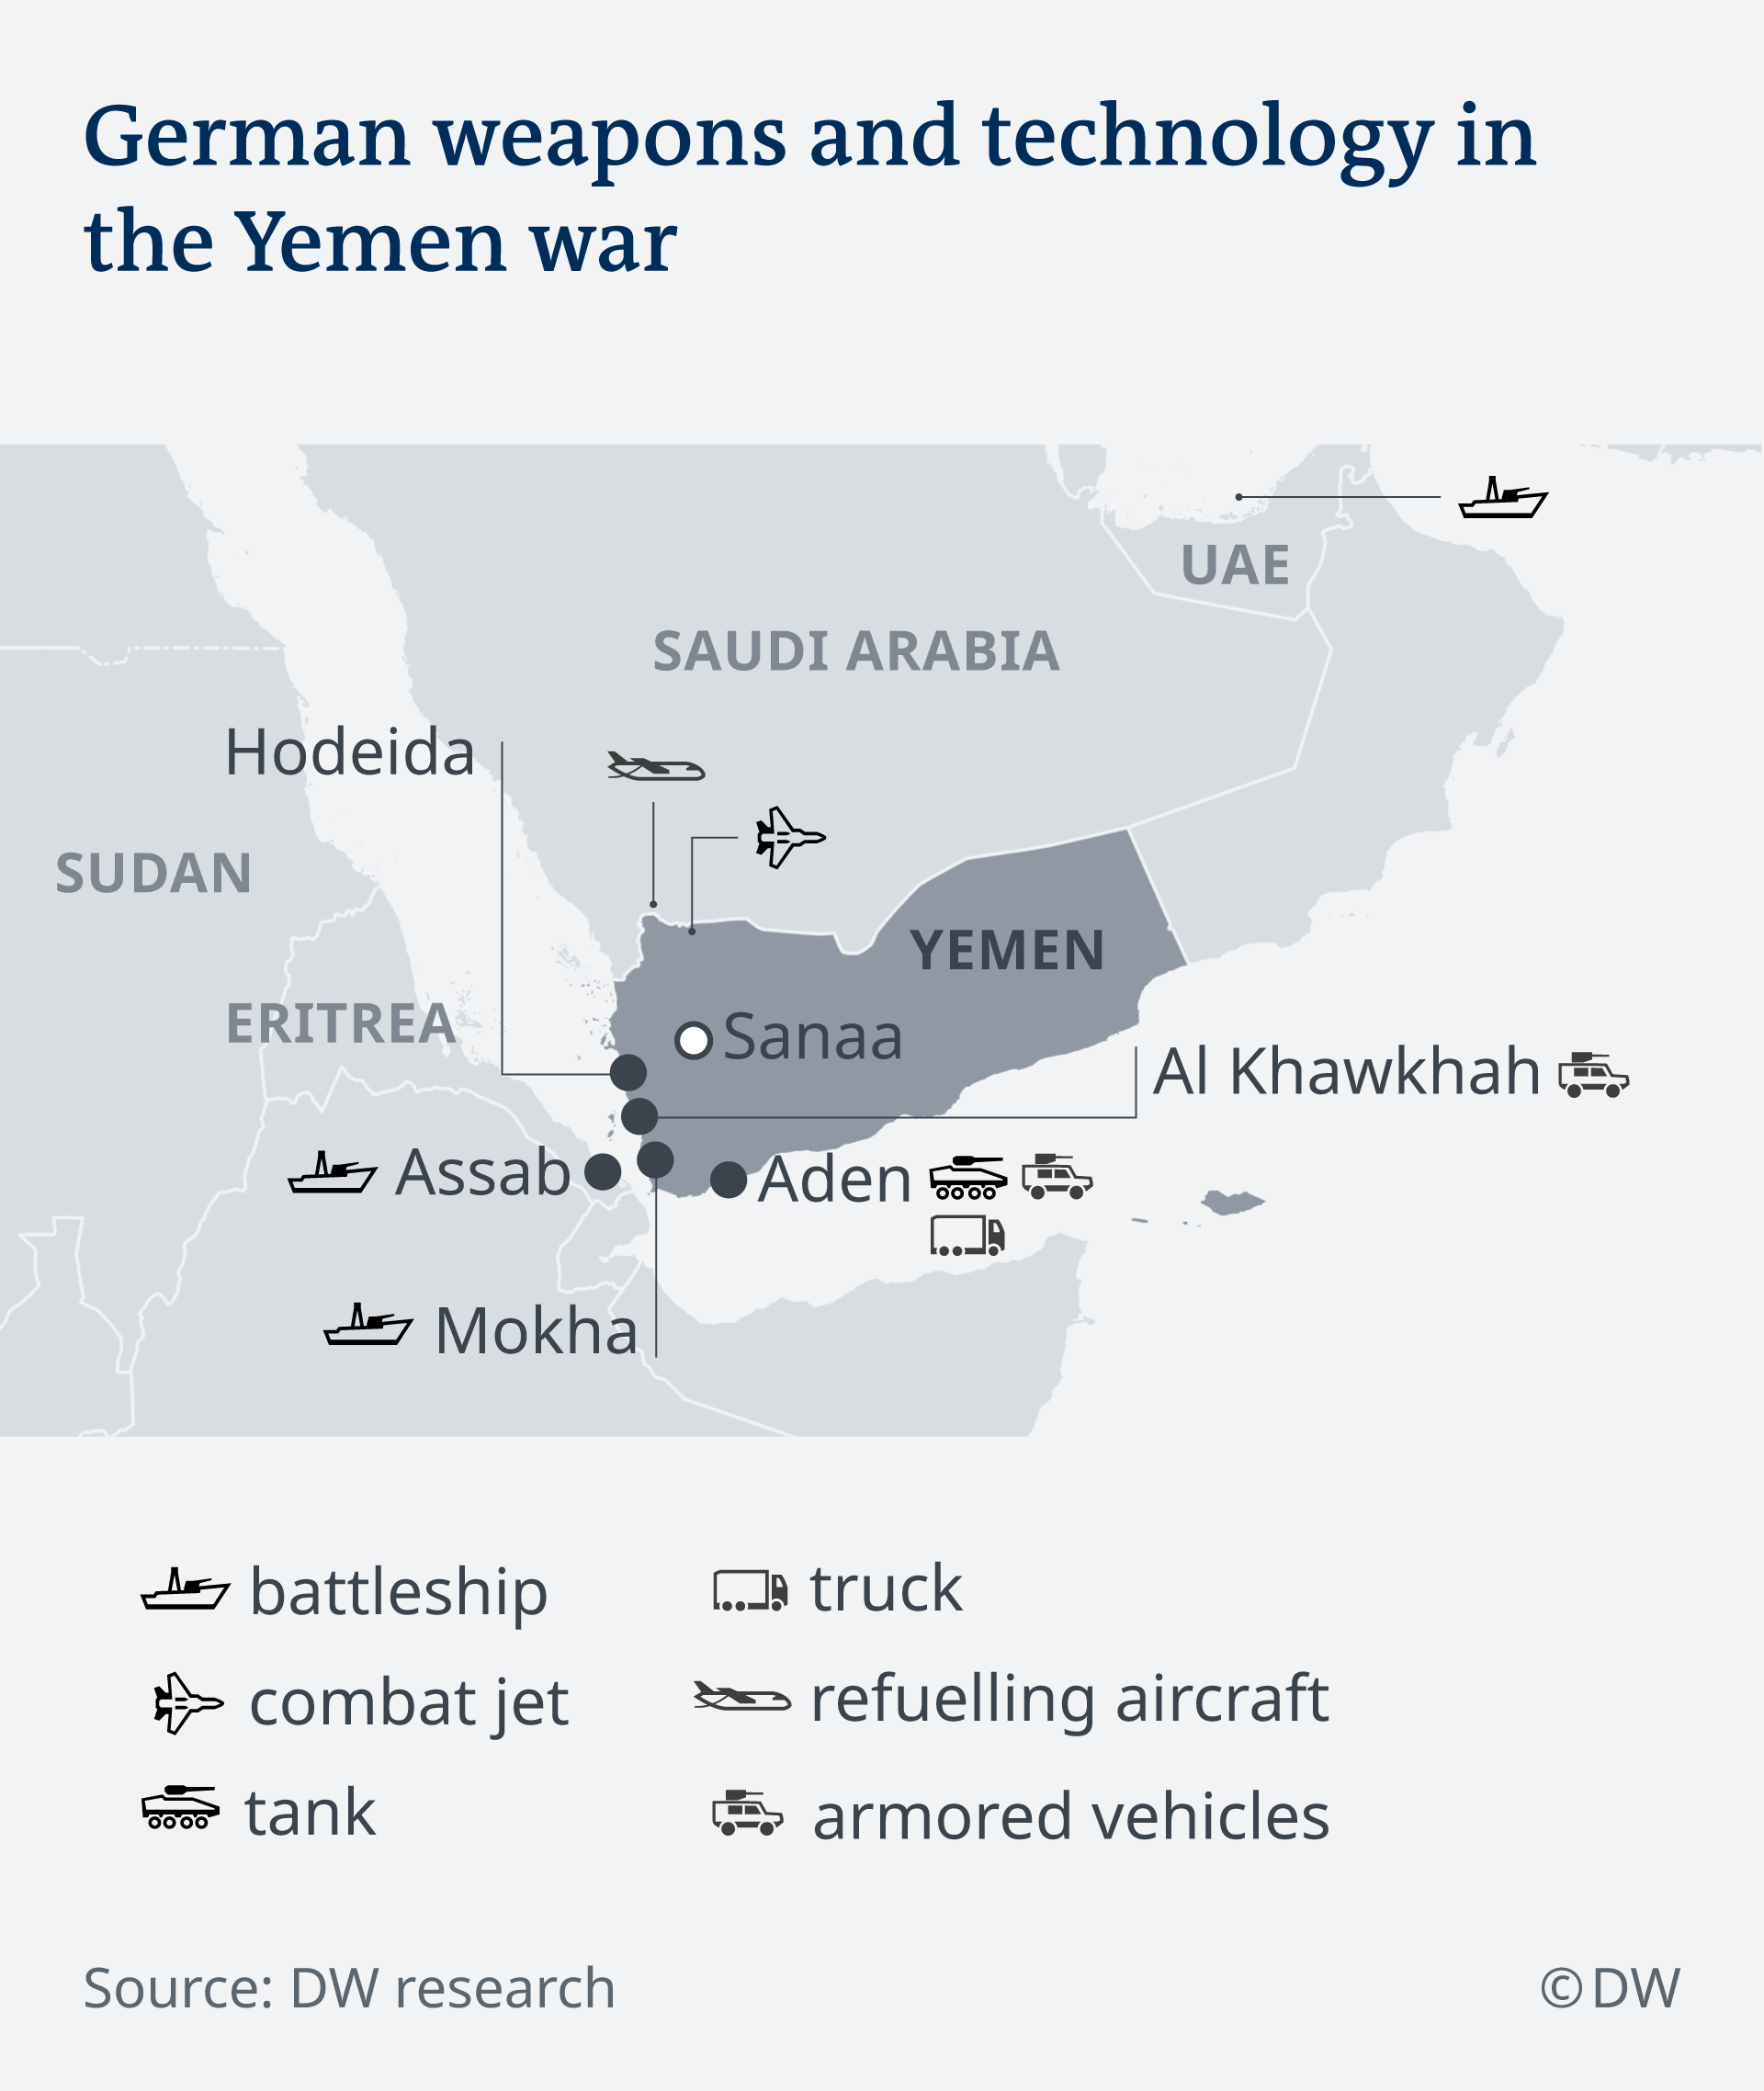 German weapons and technology in the Yemen war